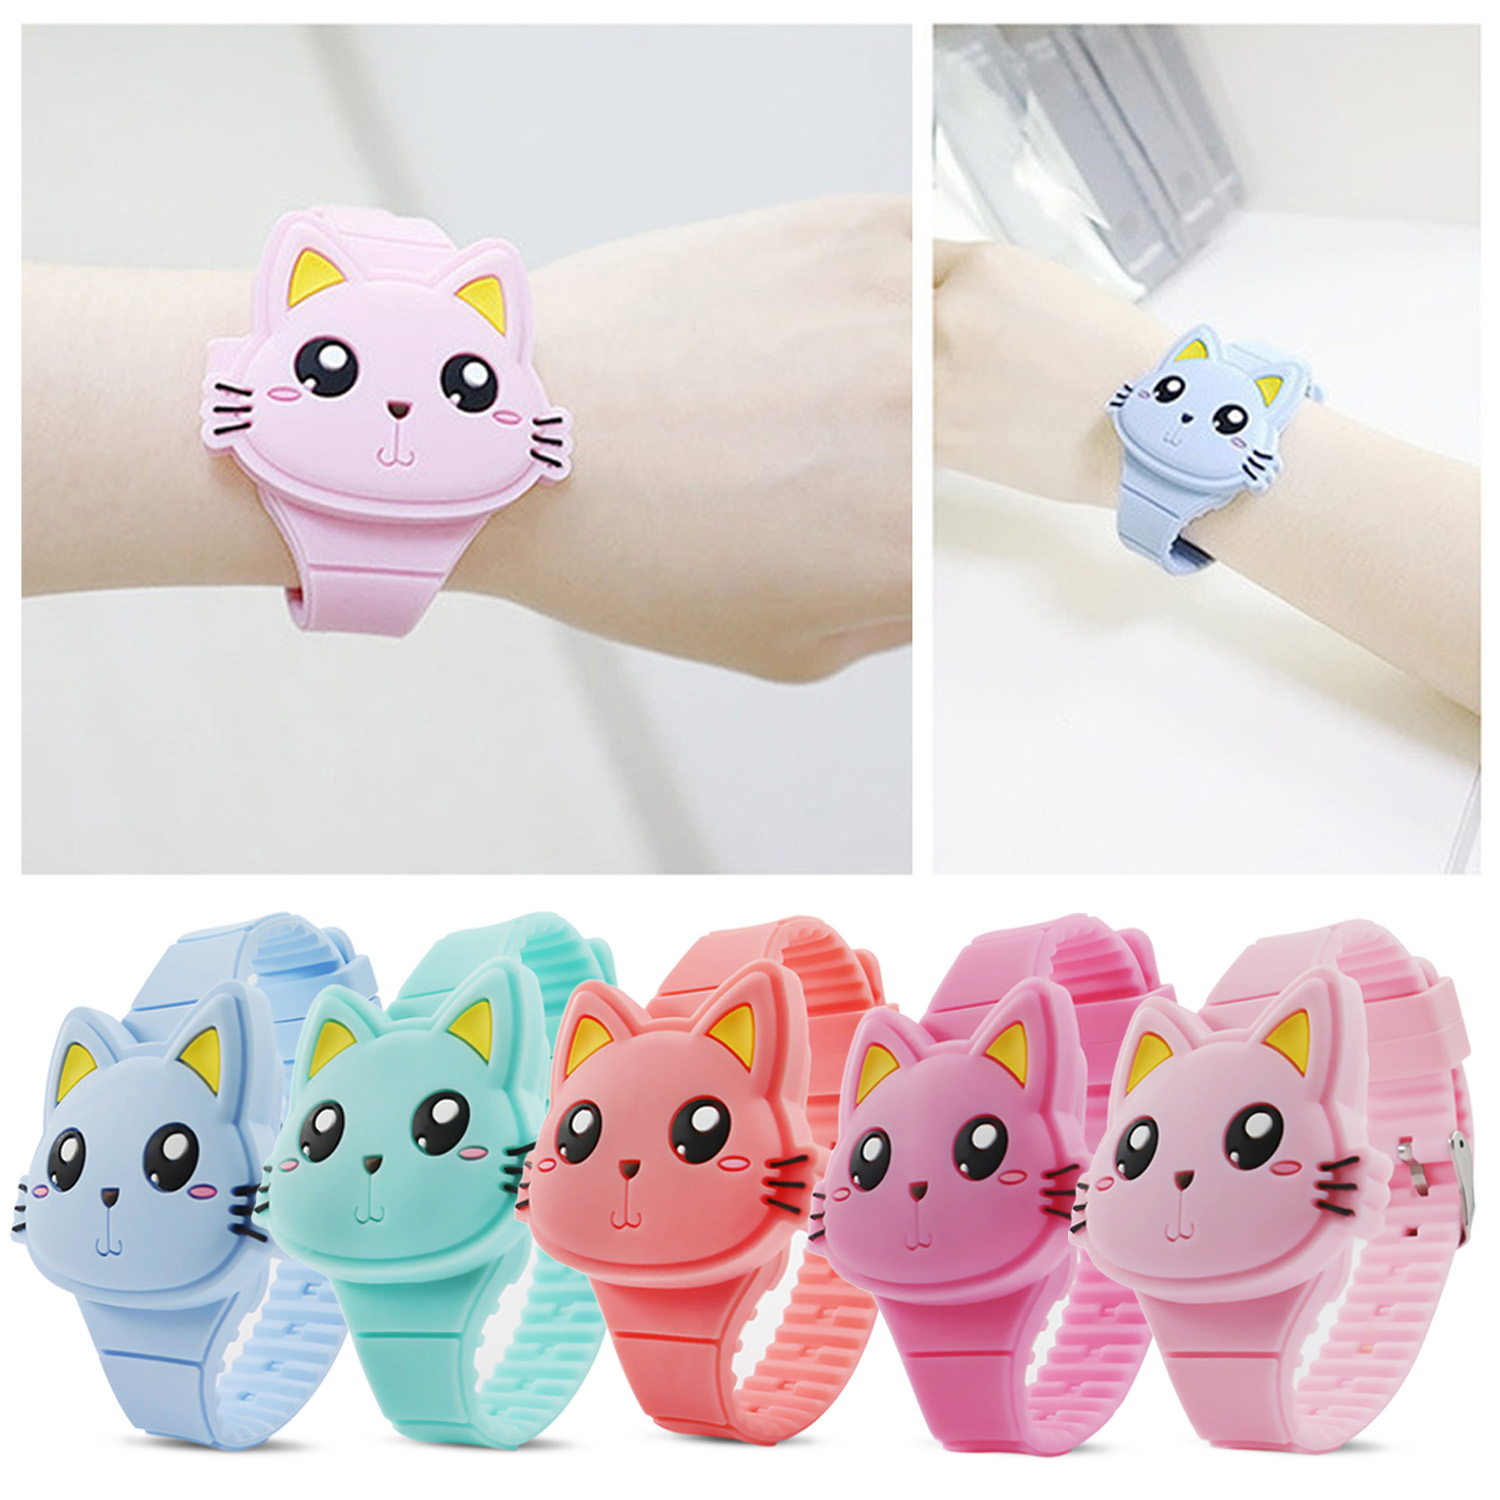 Kids Flip Cover Rubber Watch Cute 3D Cartoon Animal Cat Shape Clamshell LED Electronic Digital Wrist Watch Toy Student Clock